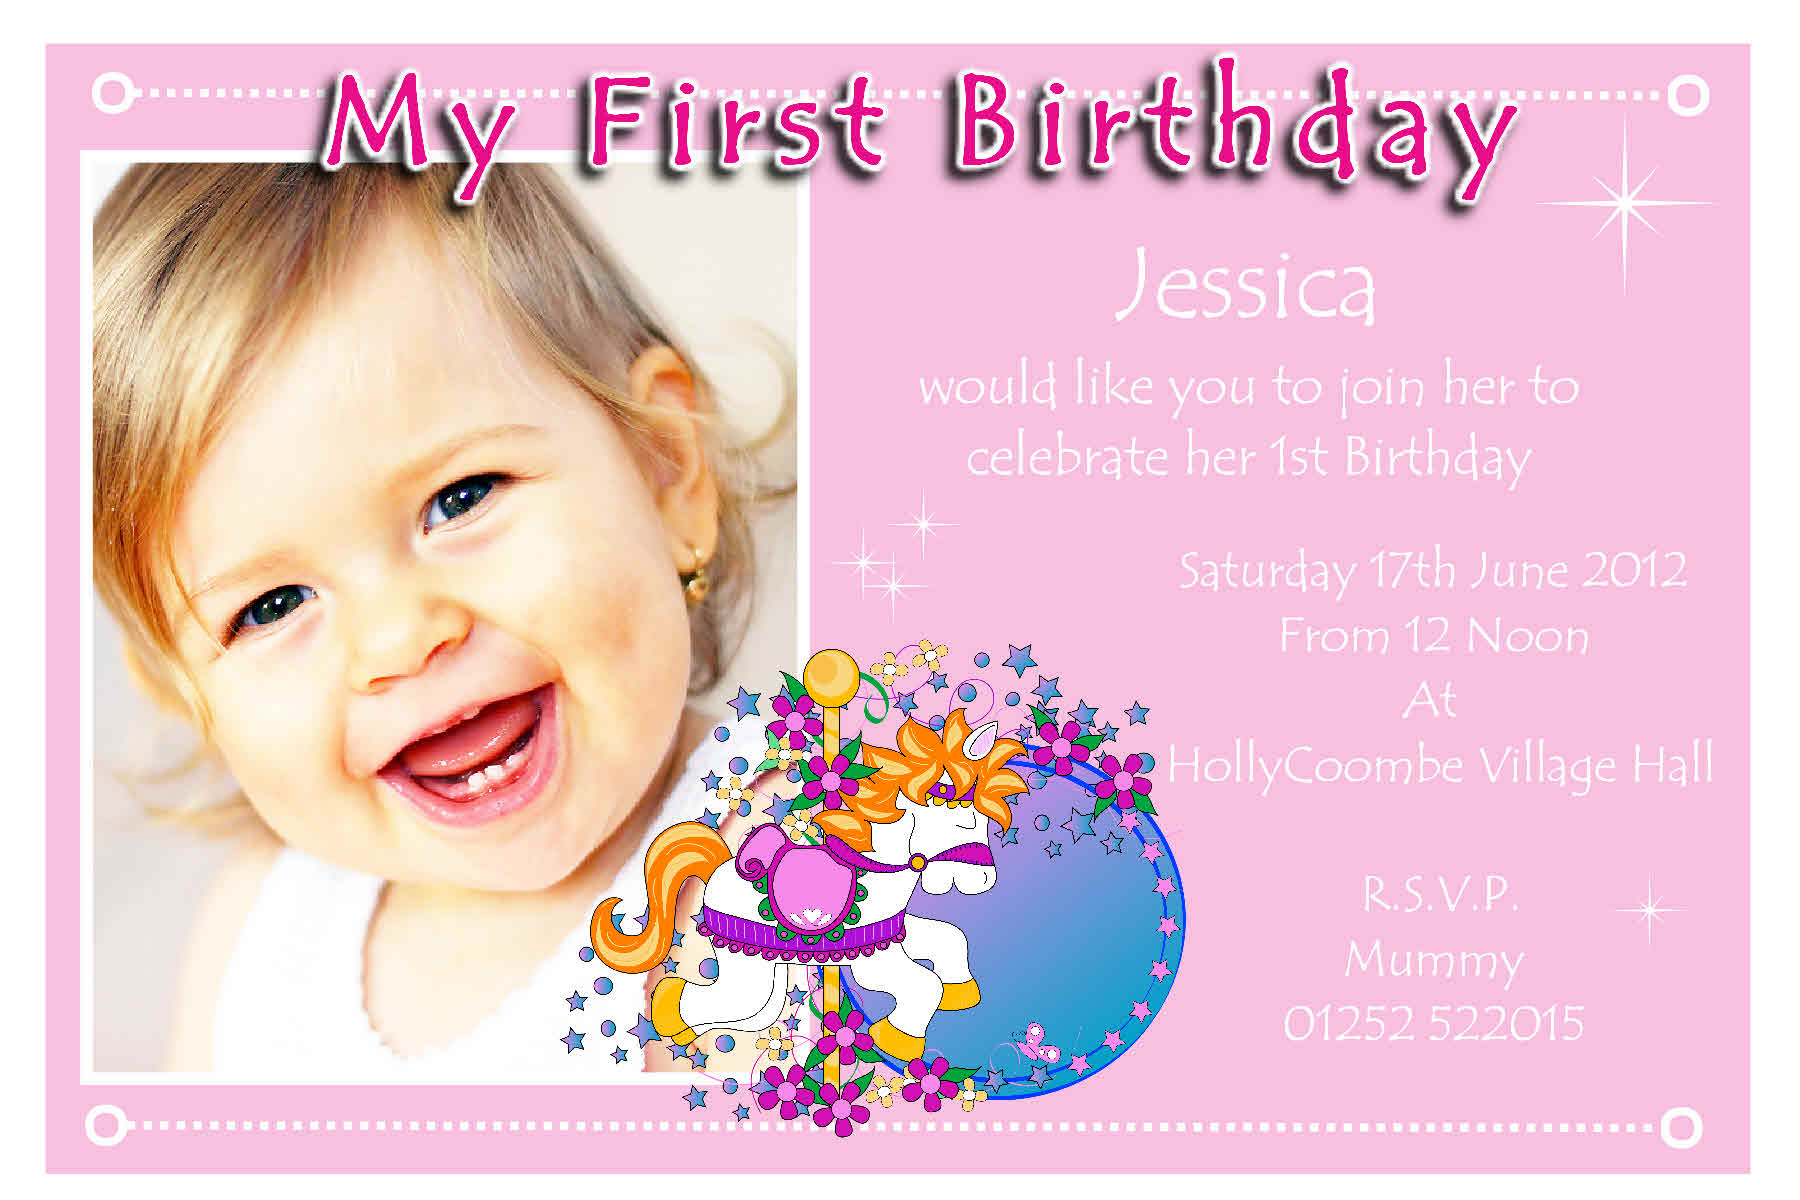 online photo editor for birthday invitations ; birthday-invitation-card-editor-online-free-fresh-free-online-party-invitations-of-birthday-invitation-card-editor-online-free